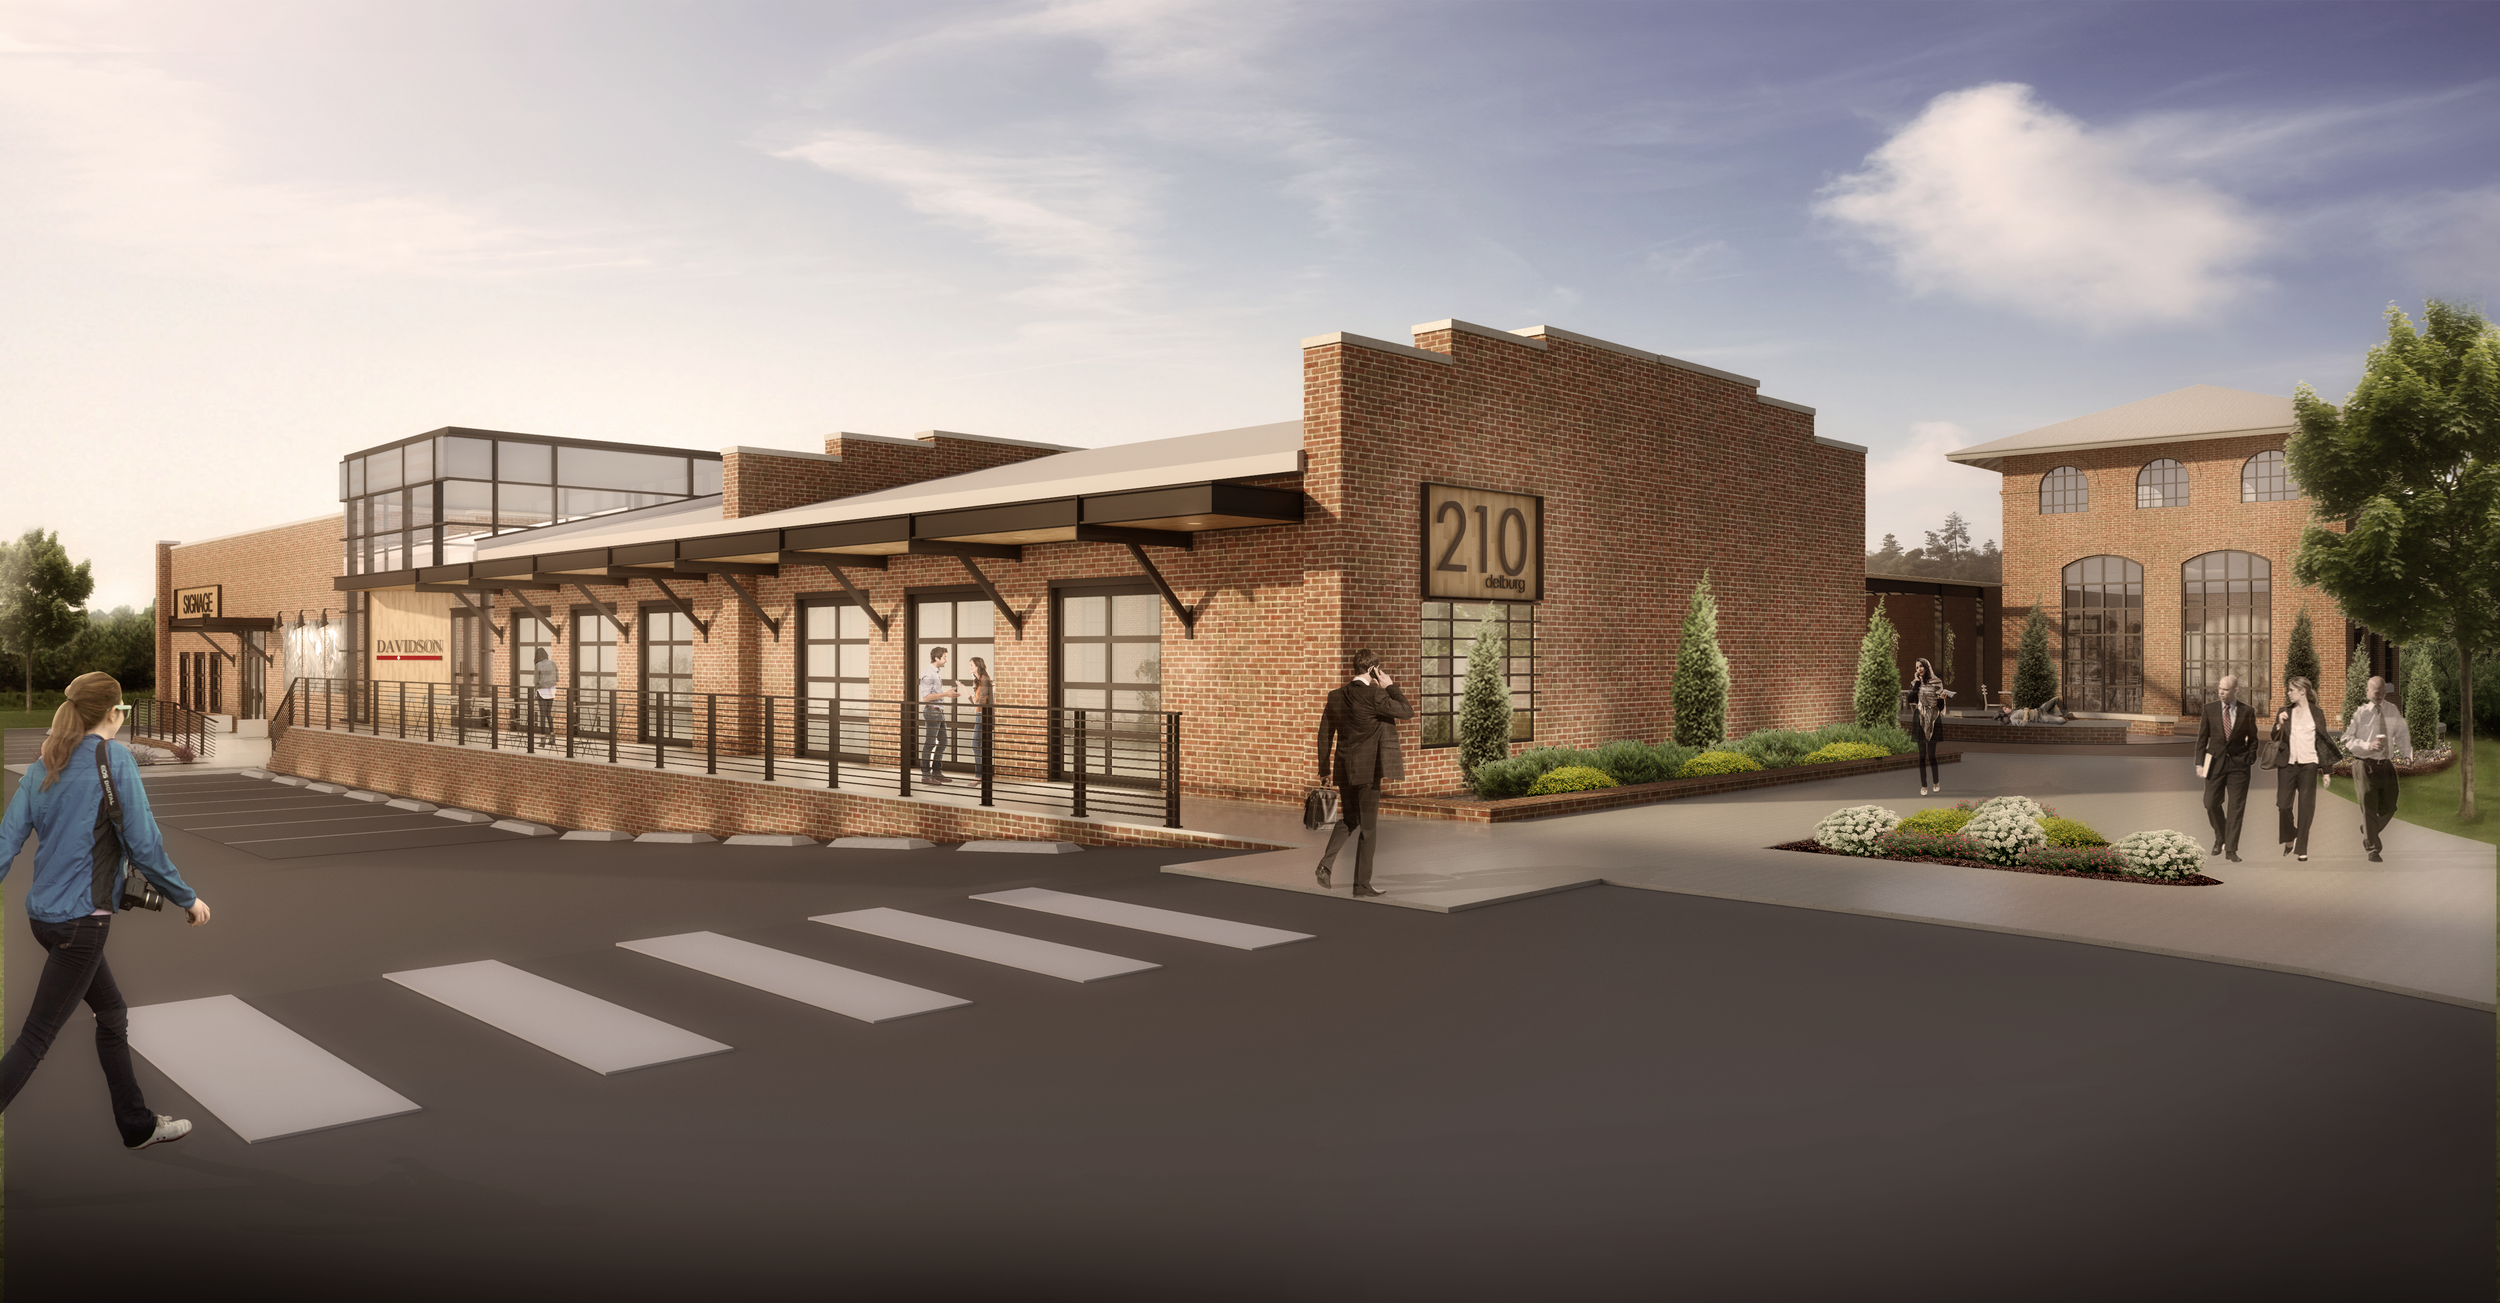 ADW-Office+Mixed-Use-210-Deburg-Small-Incubator-Davidson-NC-1.png